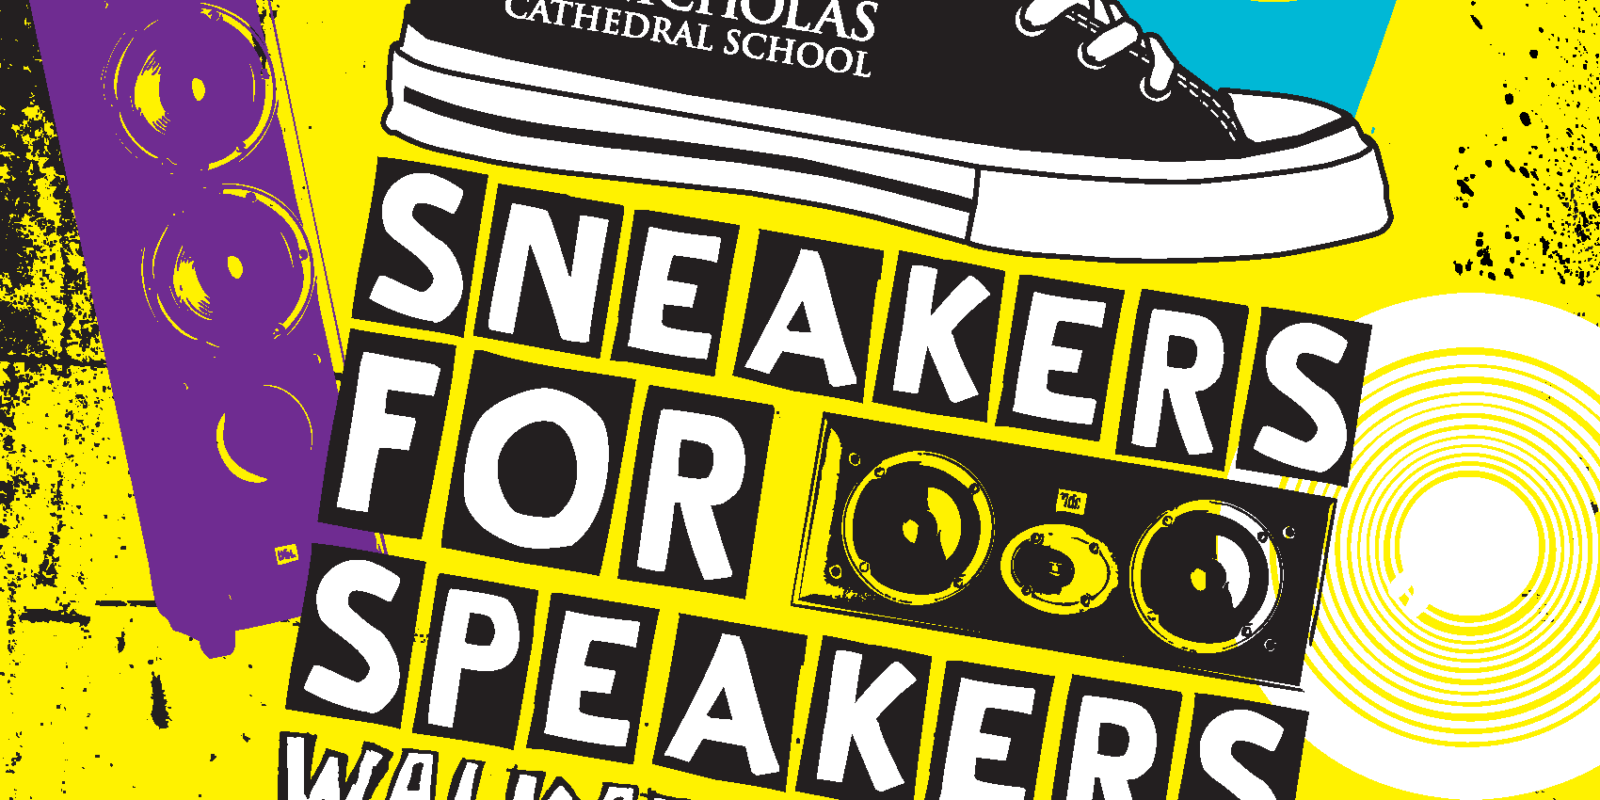 Sneakers For Speakers – Walk-A-Thon 2017